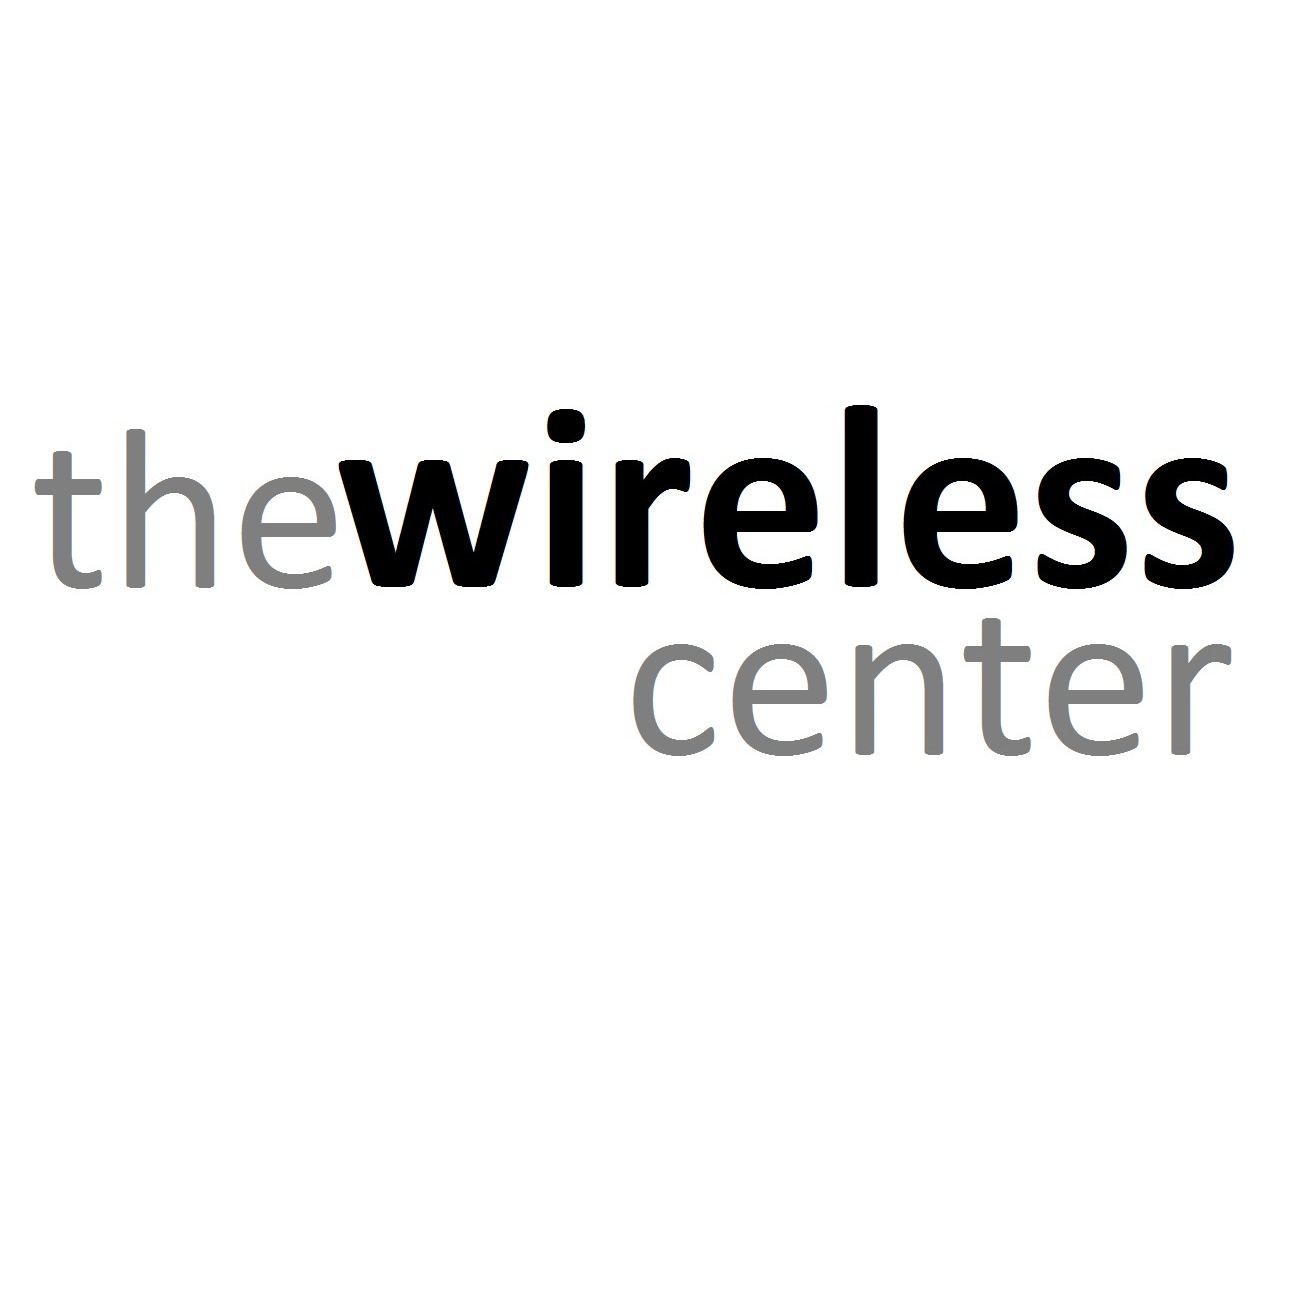 The Wireless Center